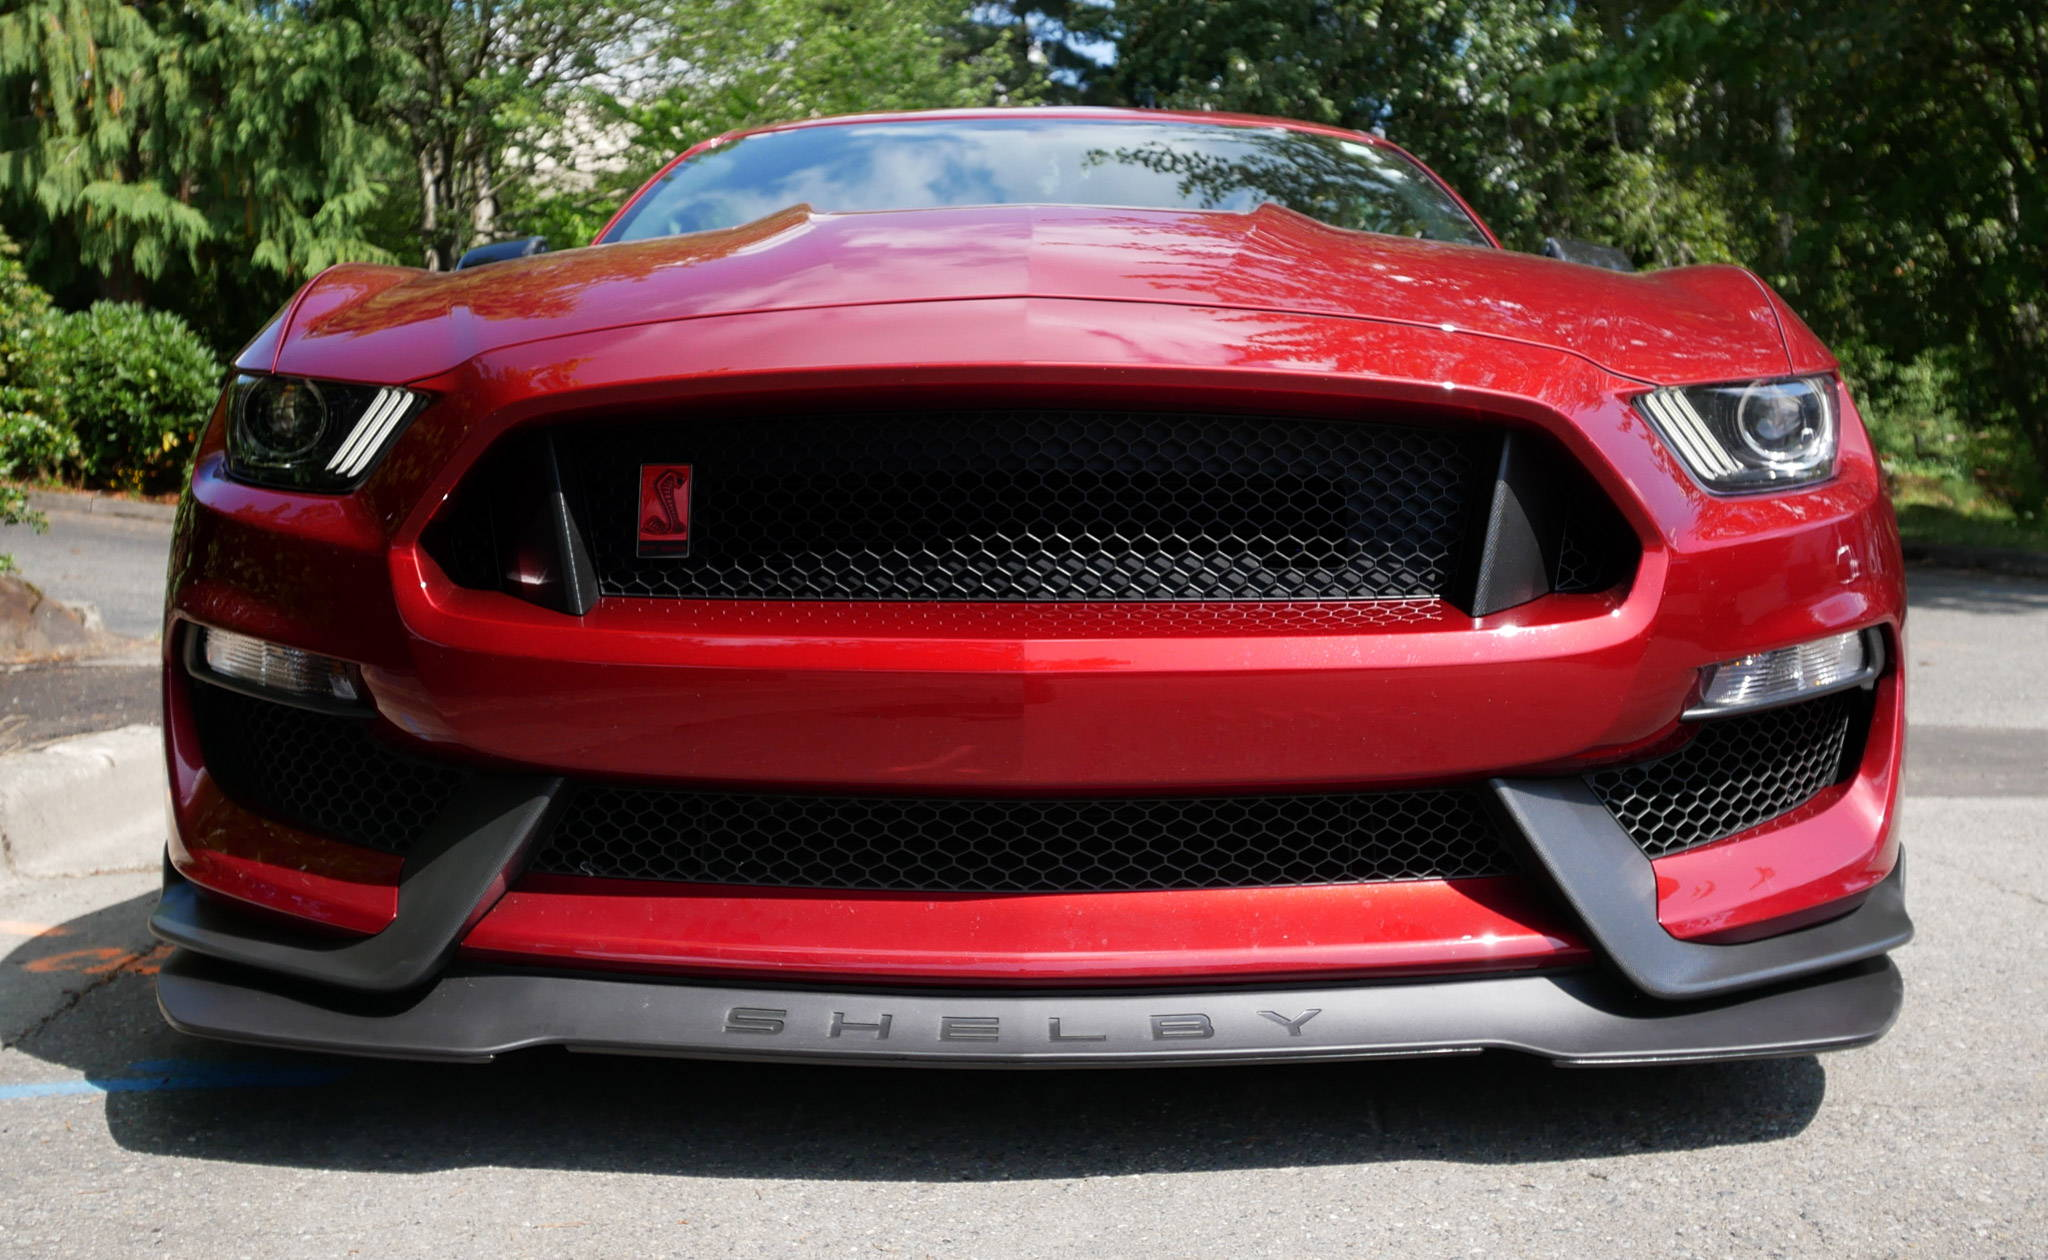 Ford Mustang Shelby GT350R Scrape Armor